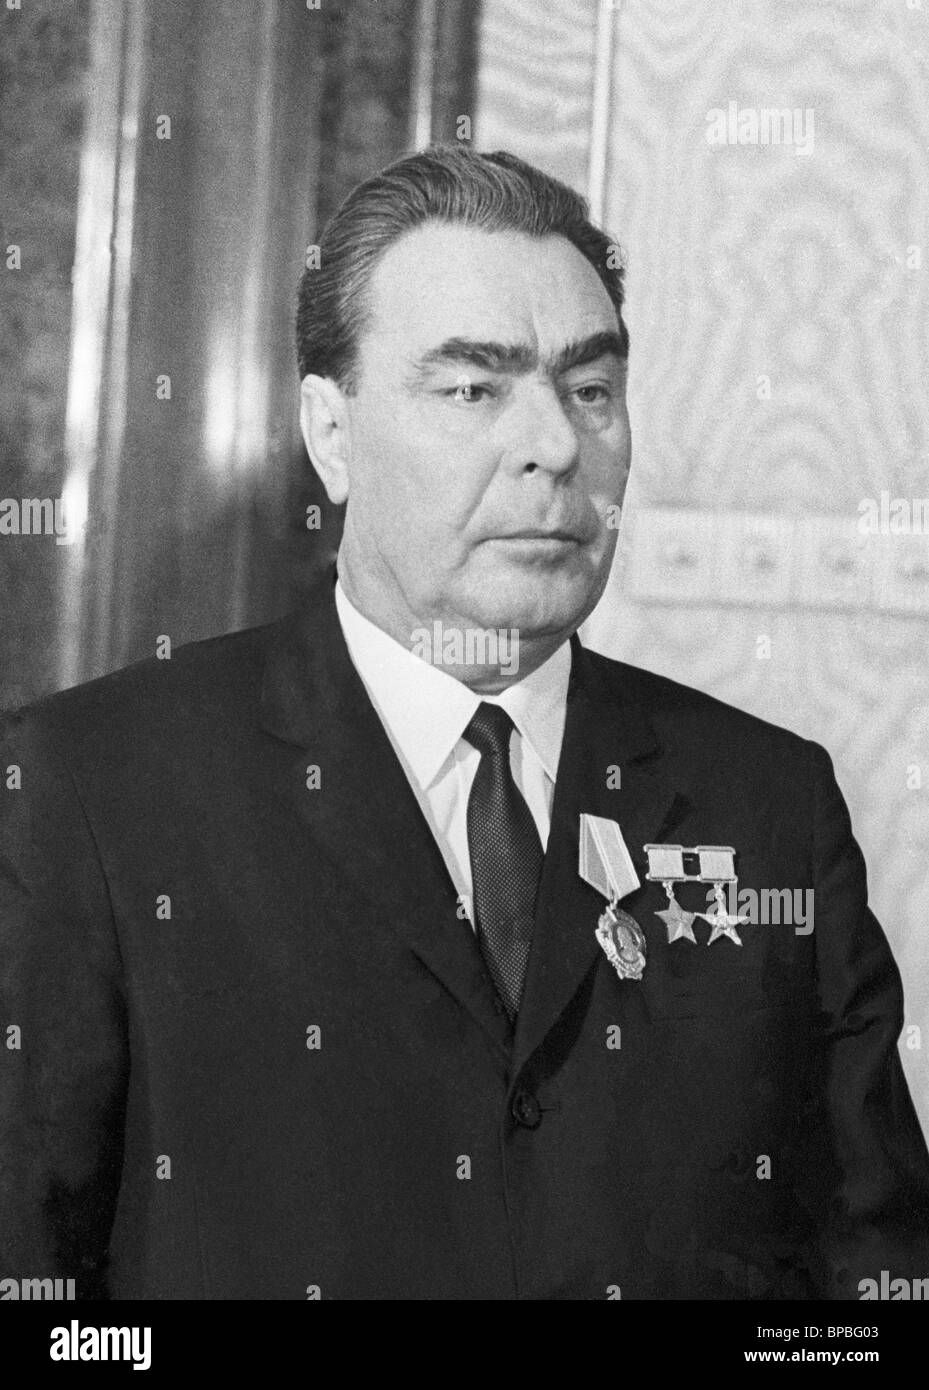 leonid brezhnev General secretary of the cpsu cc, brezhnev, reports to khrushchev about the  new course of the sed and the political mood of the population of the gdr.